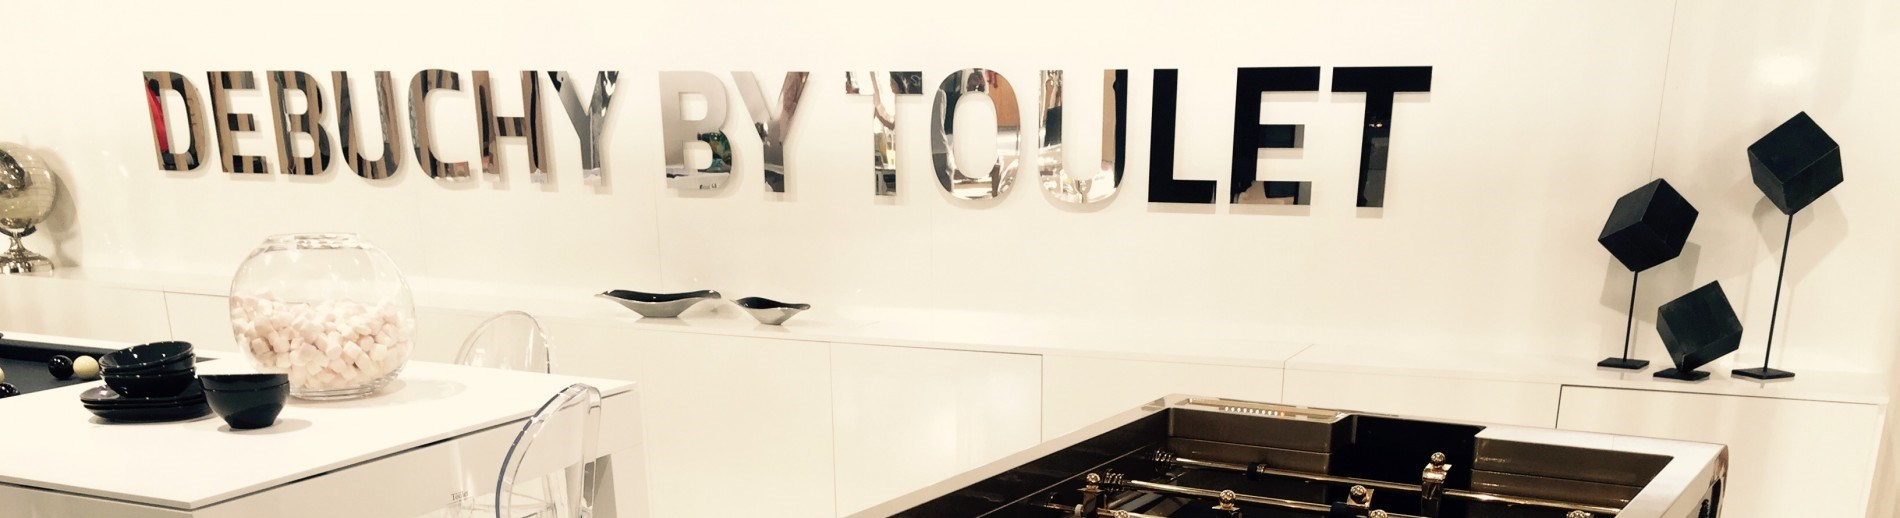 Baby foot l'experience Debuchy by toulet maison objet